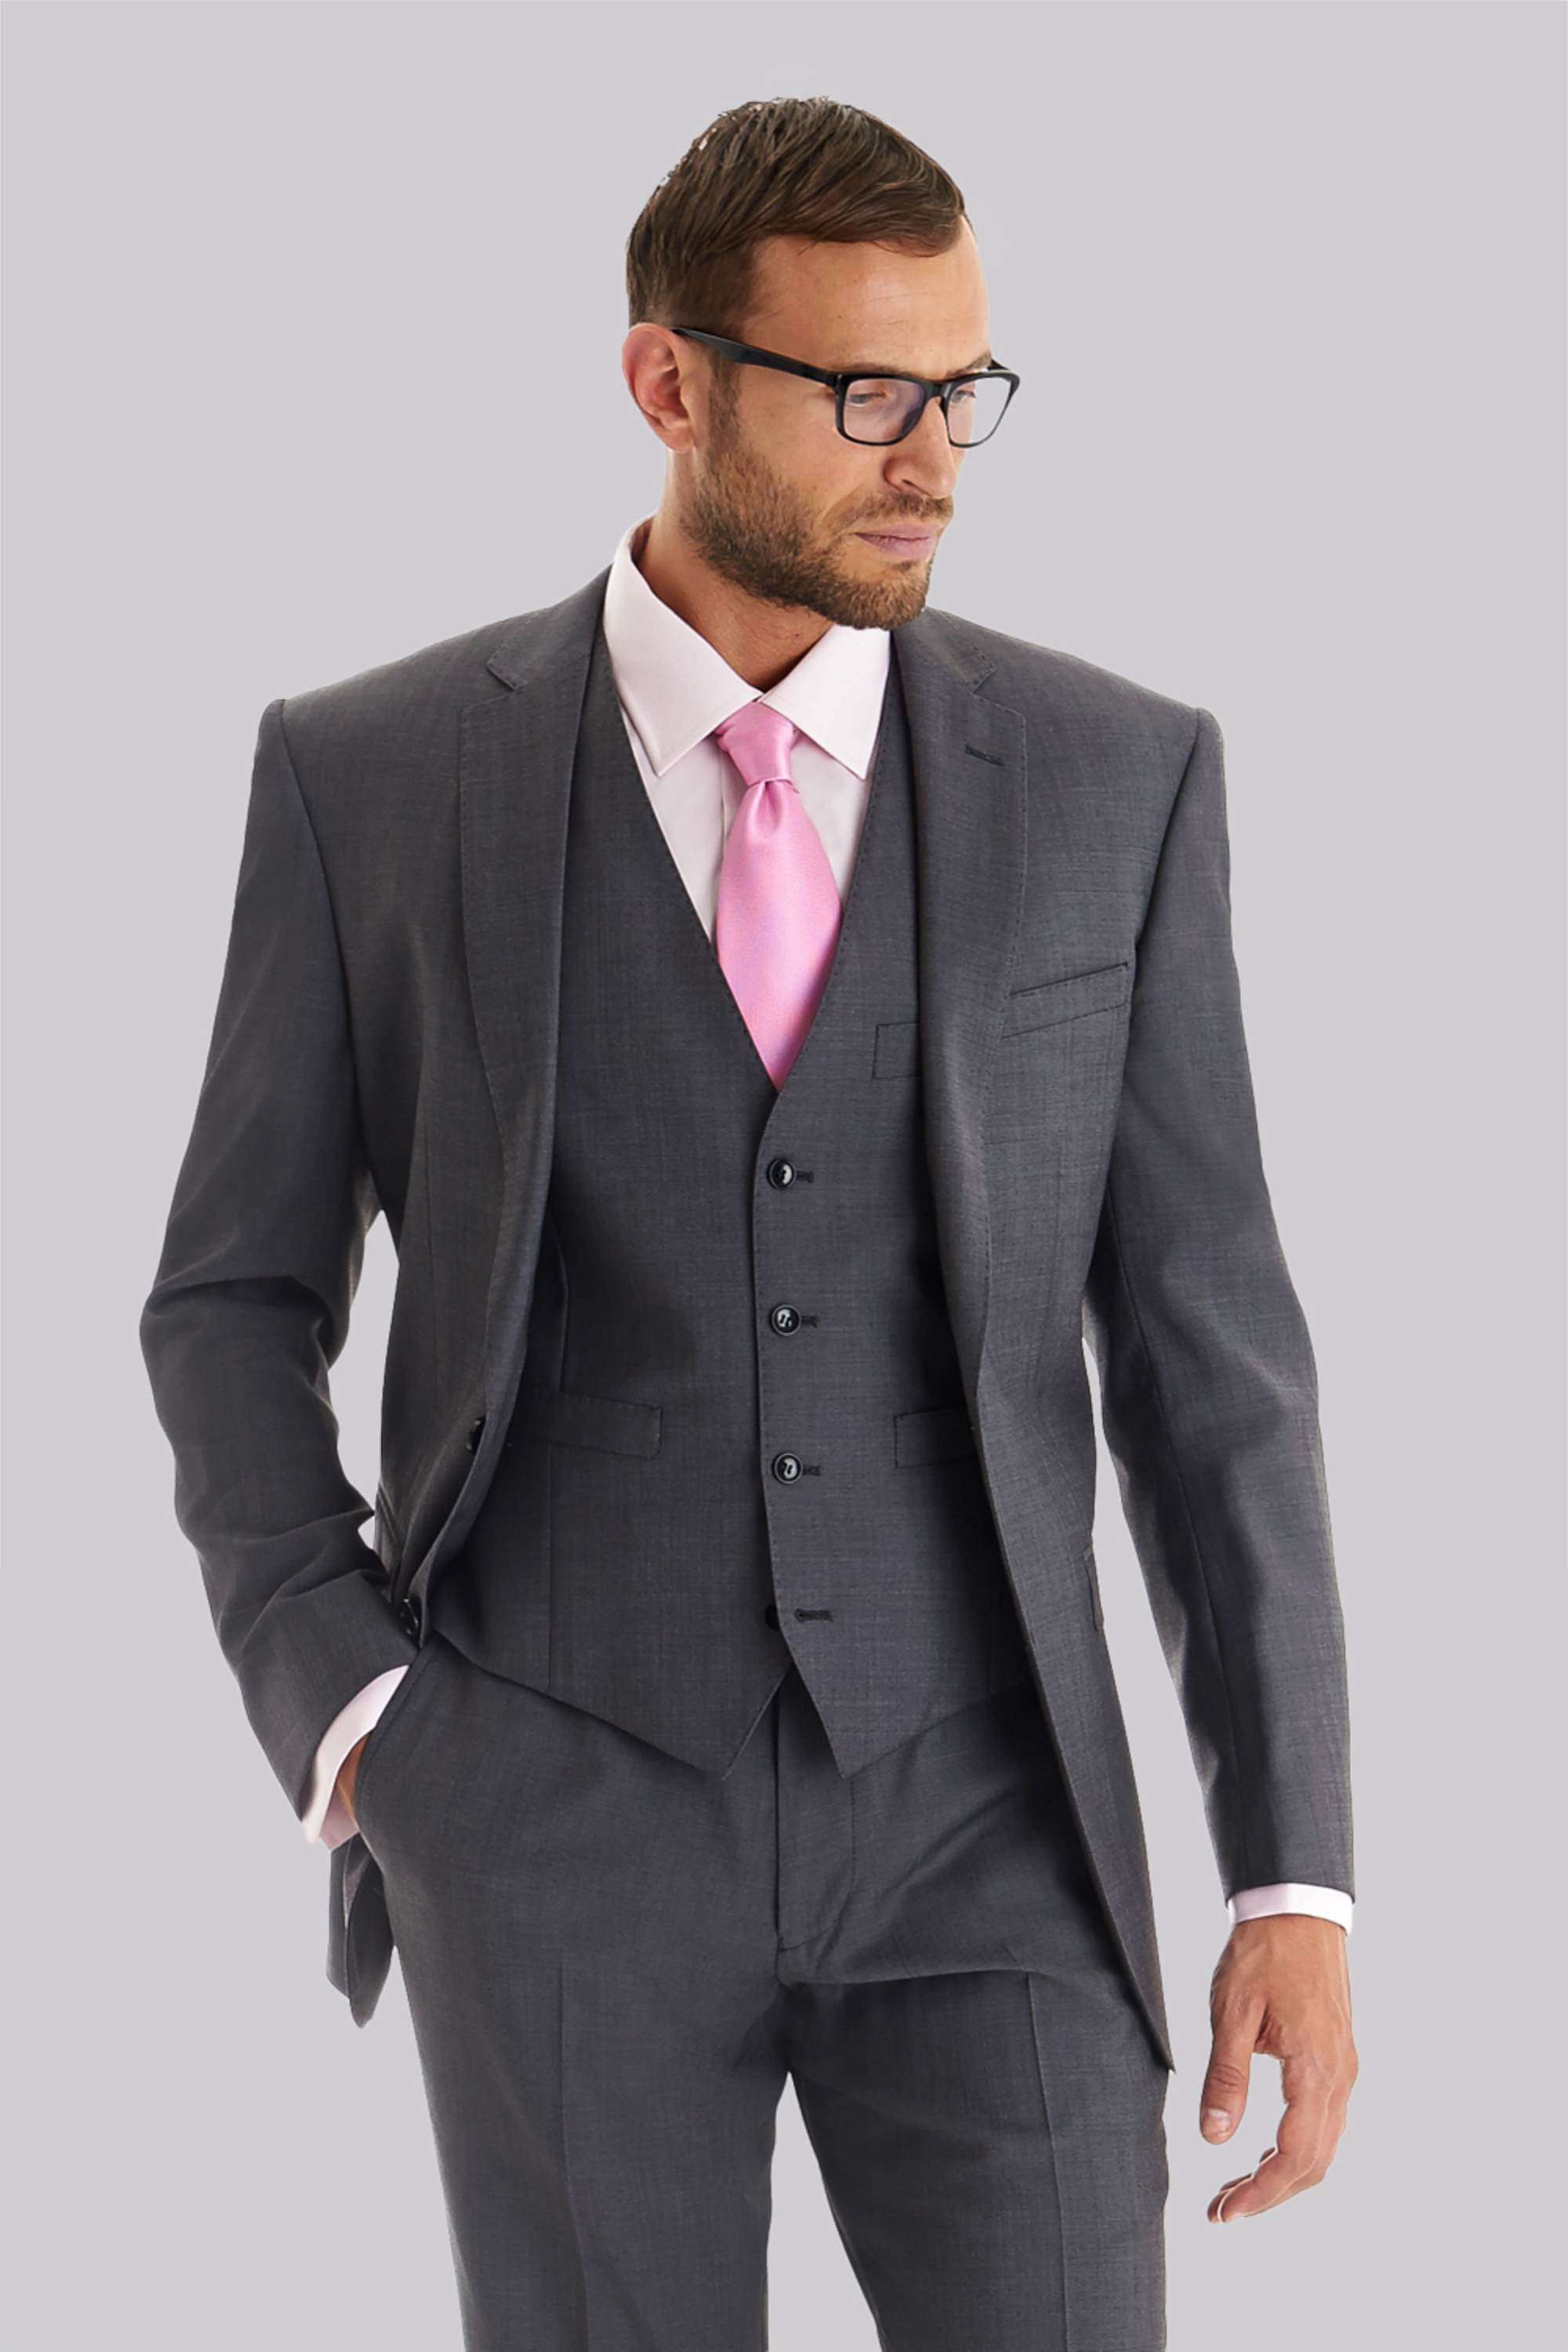 Blazer Men Suit Jacket Only Tailored Fit Grey Notch Lapel Formal ...